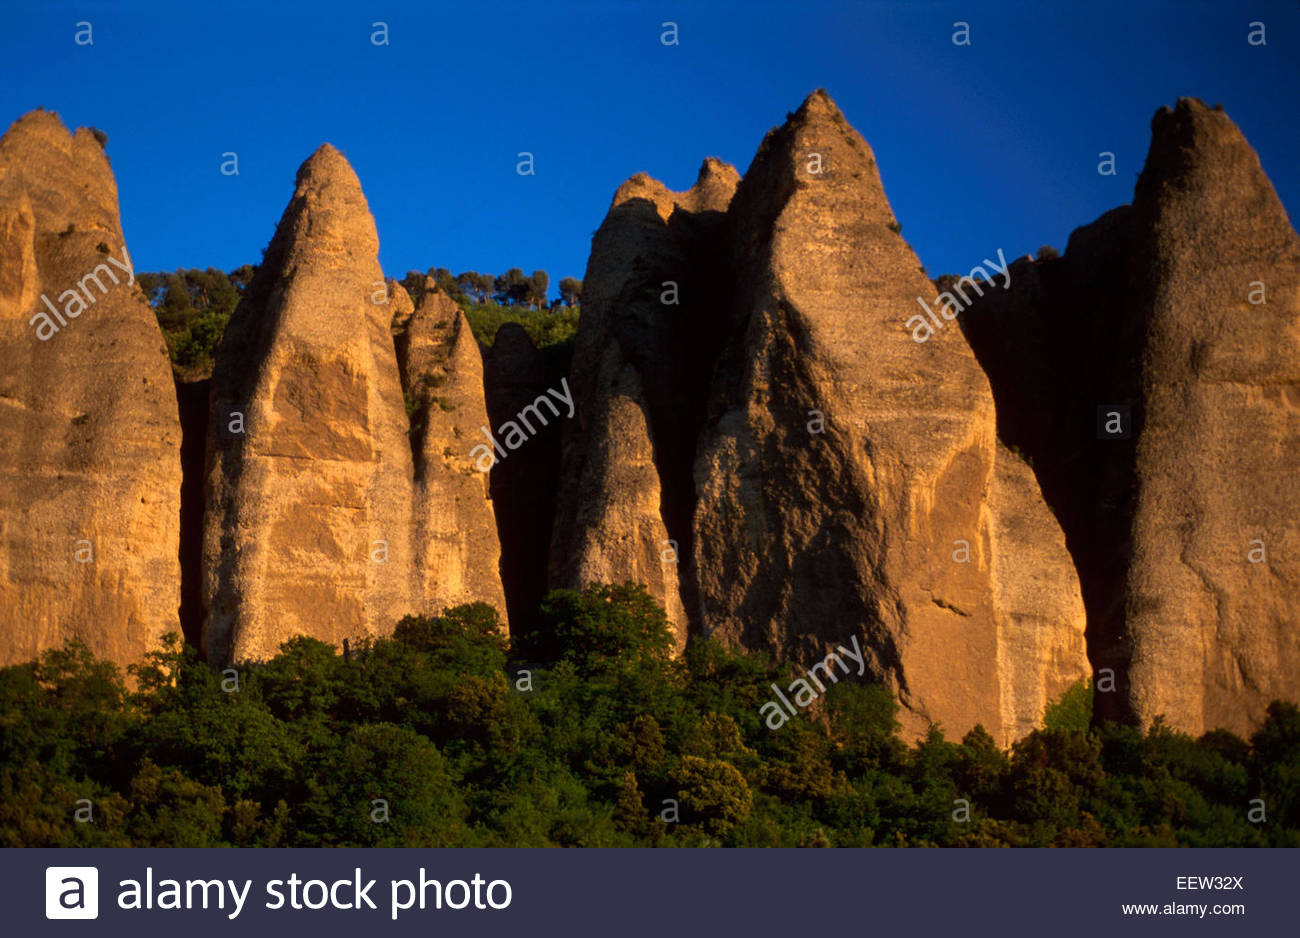 The Penitents des Mees, between Forcalquier, Sisteron and Digne, Alpes-de-Haute-Provence, France. Legend of France - Stock Image